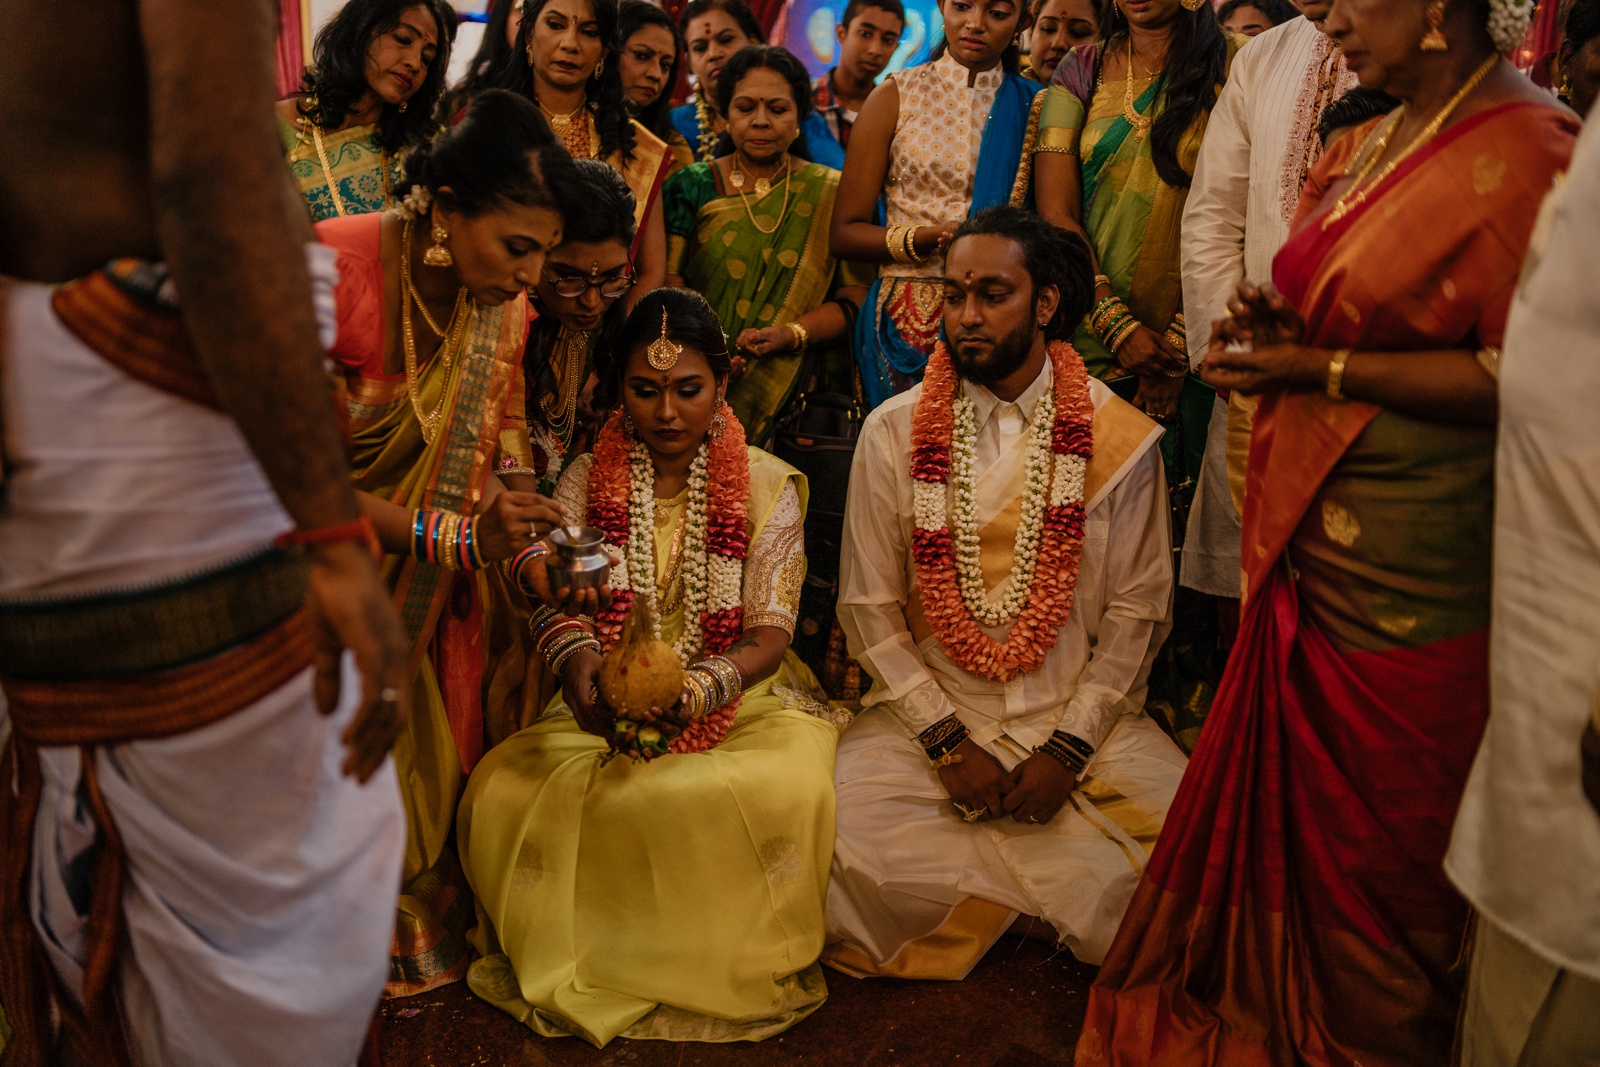 Babies,Black & White,Bride,Candid,Ceremony,Families,Fashion,Headshots,Hinduism,Hinduism Cultue,Indian Culture,Indian Wedding,Indian Wedding Ceremony,Indian Wedding Photographer,Individuals,Junebug Wedding,Malaysian Wedding Photographer,Outdoor,Pets,Pre-Ceremony,Reception,Summer,Temple,Wedding Indoor,Wedding Party,rangefinder magazine,